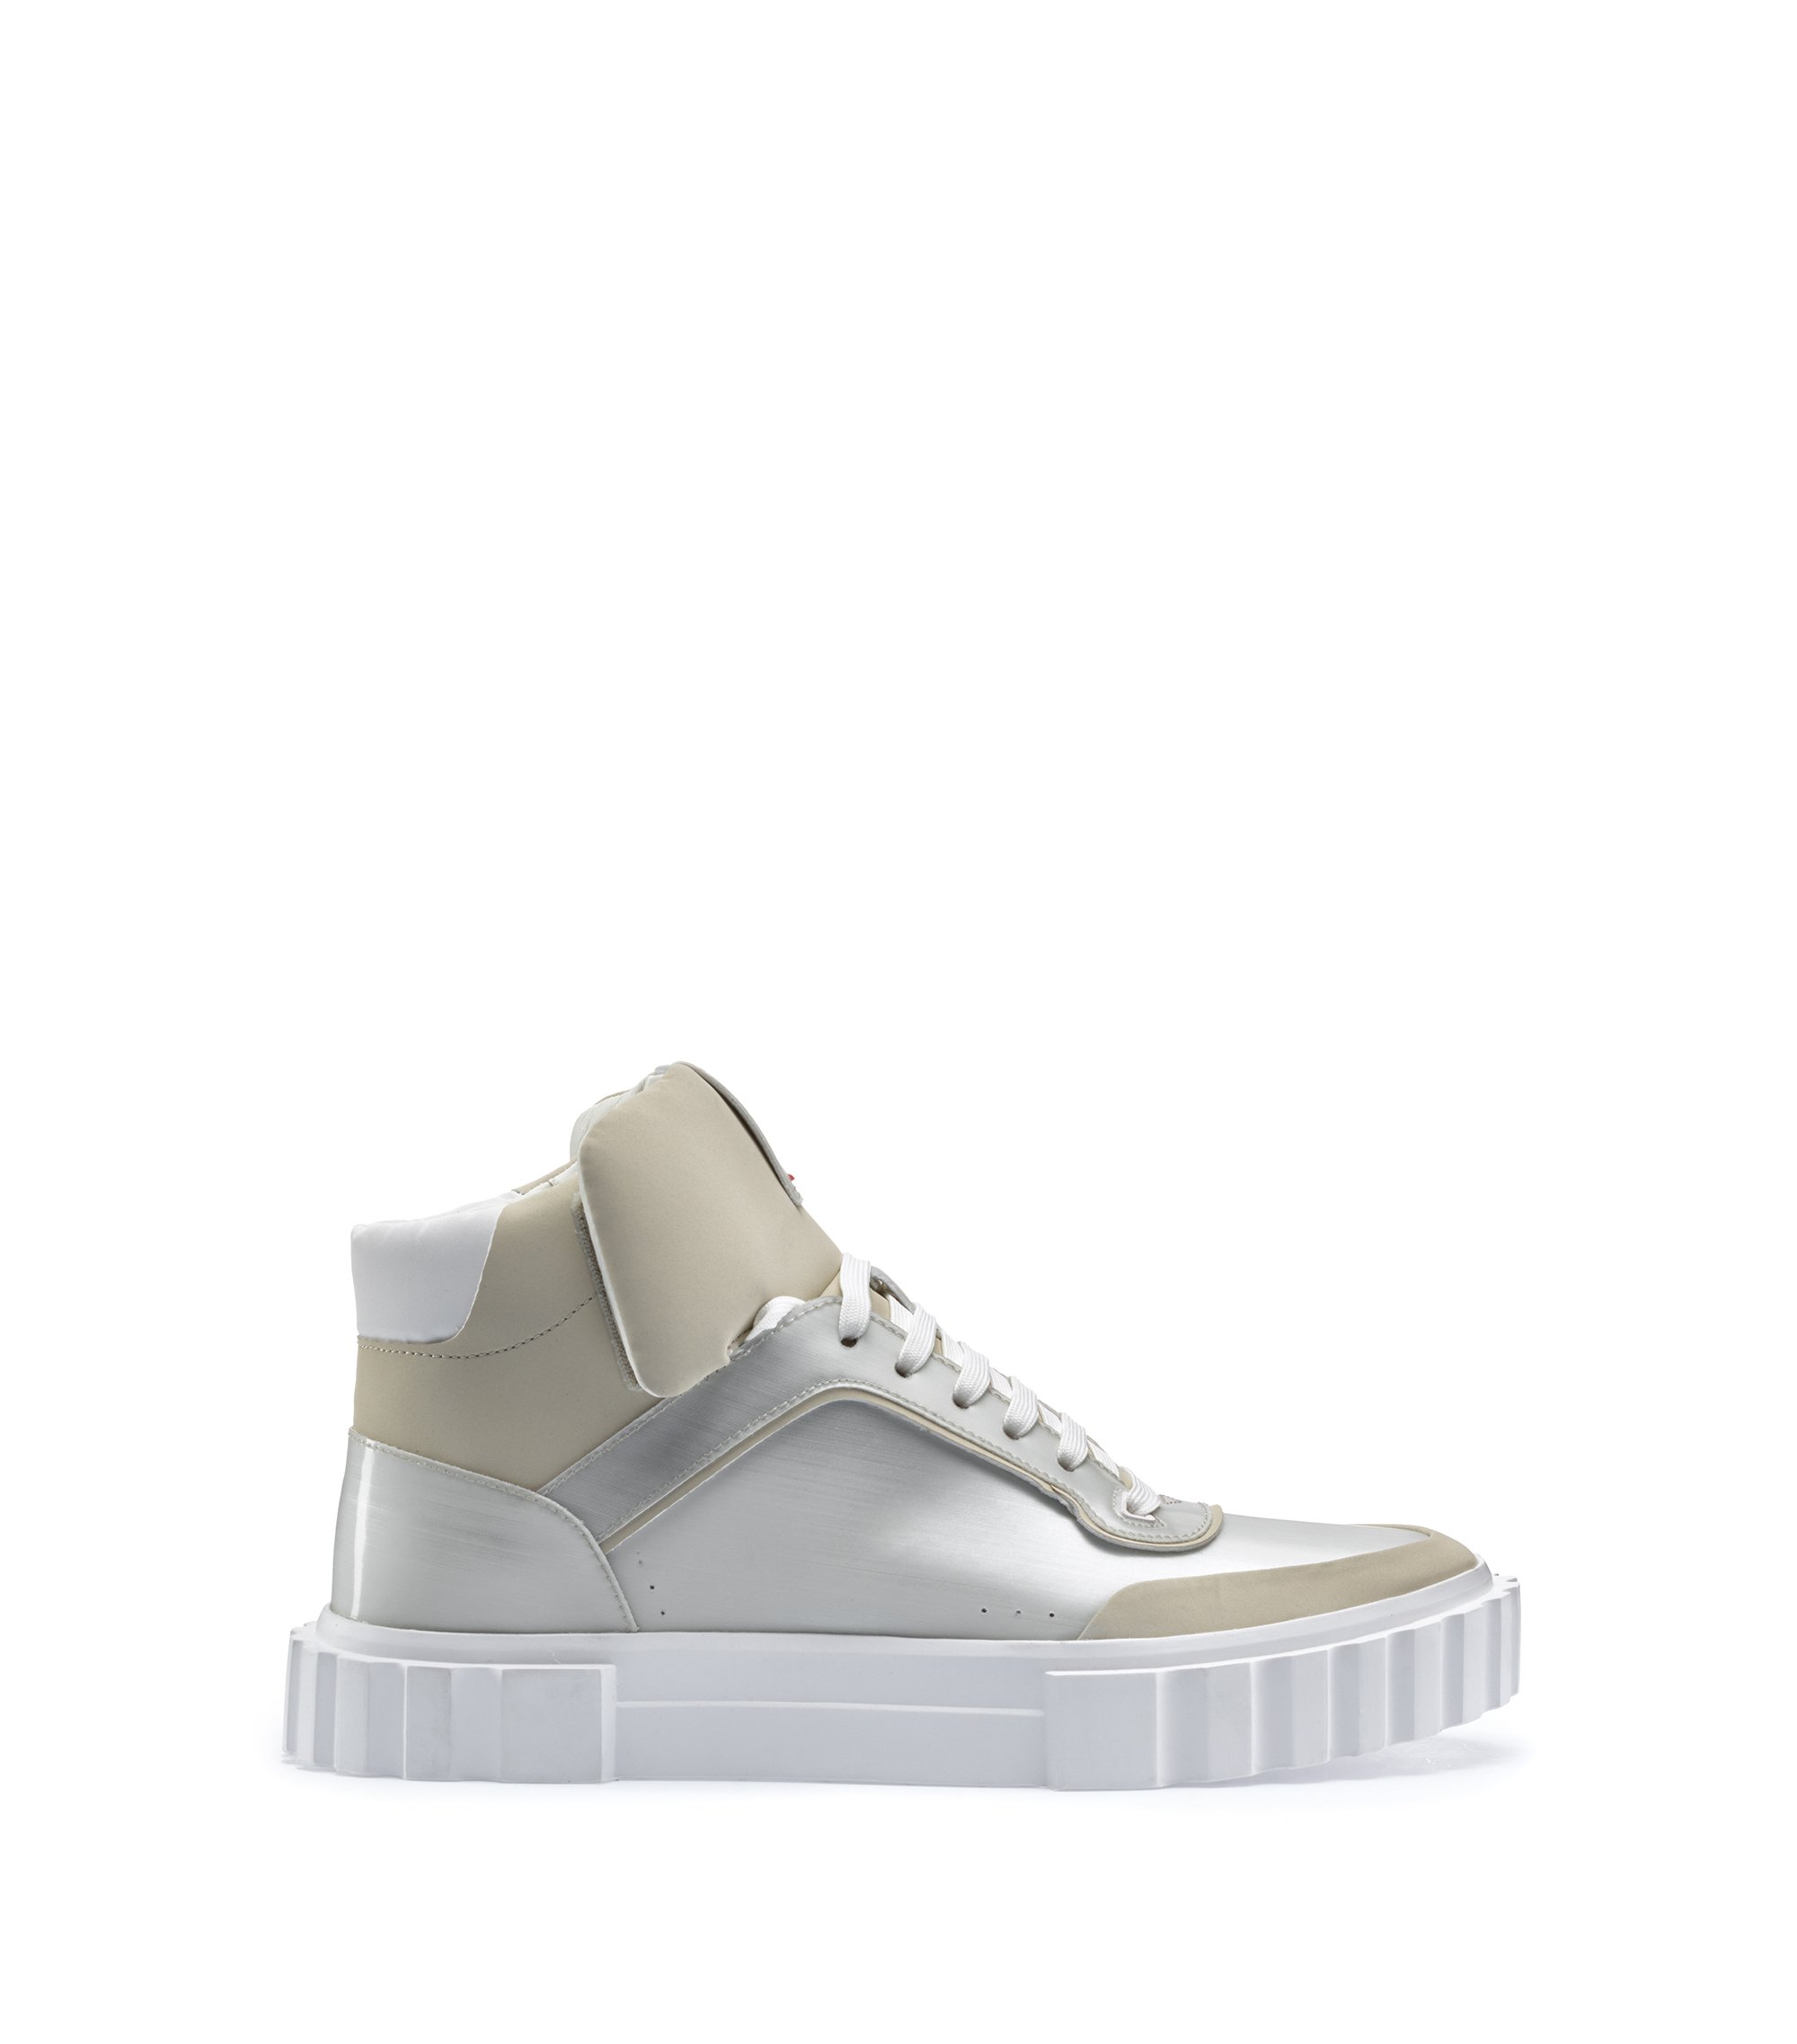 High-top lace-up sneakers with metallic finish, Light Grey